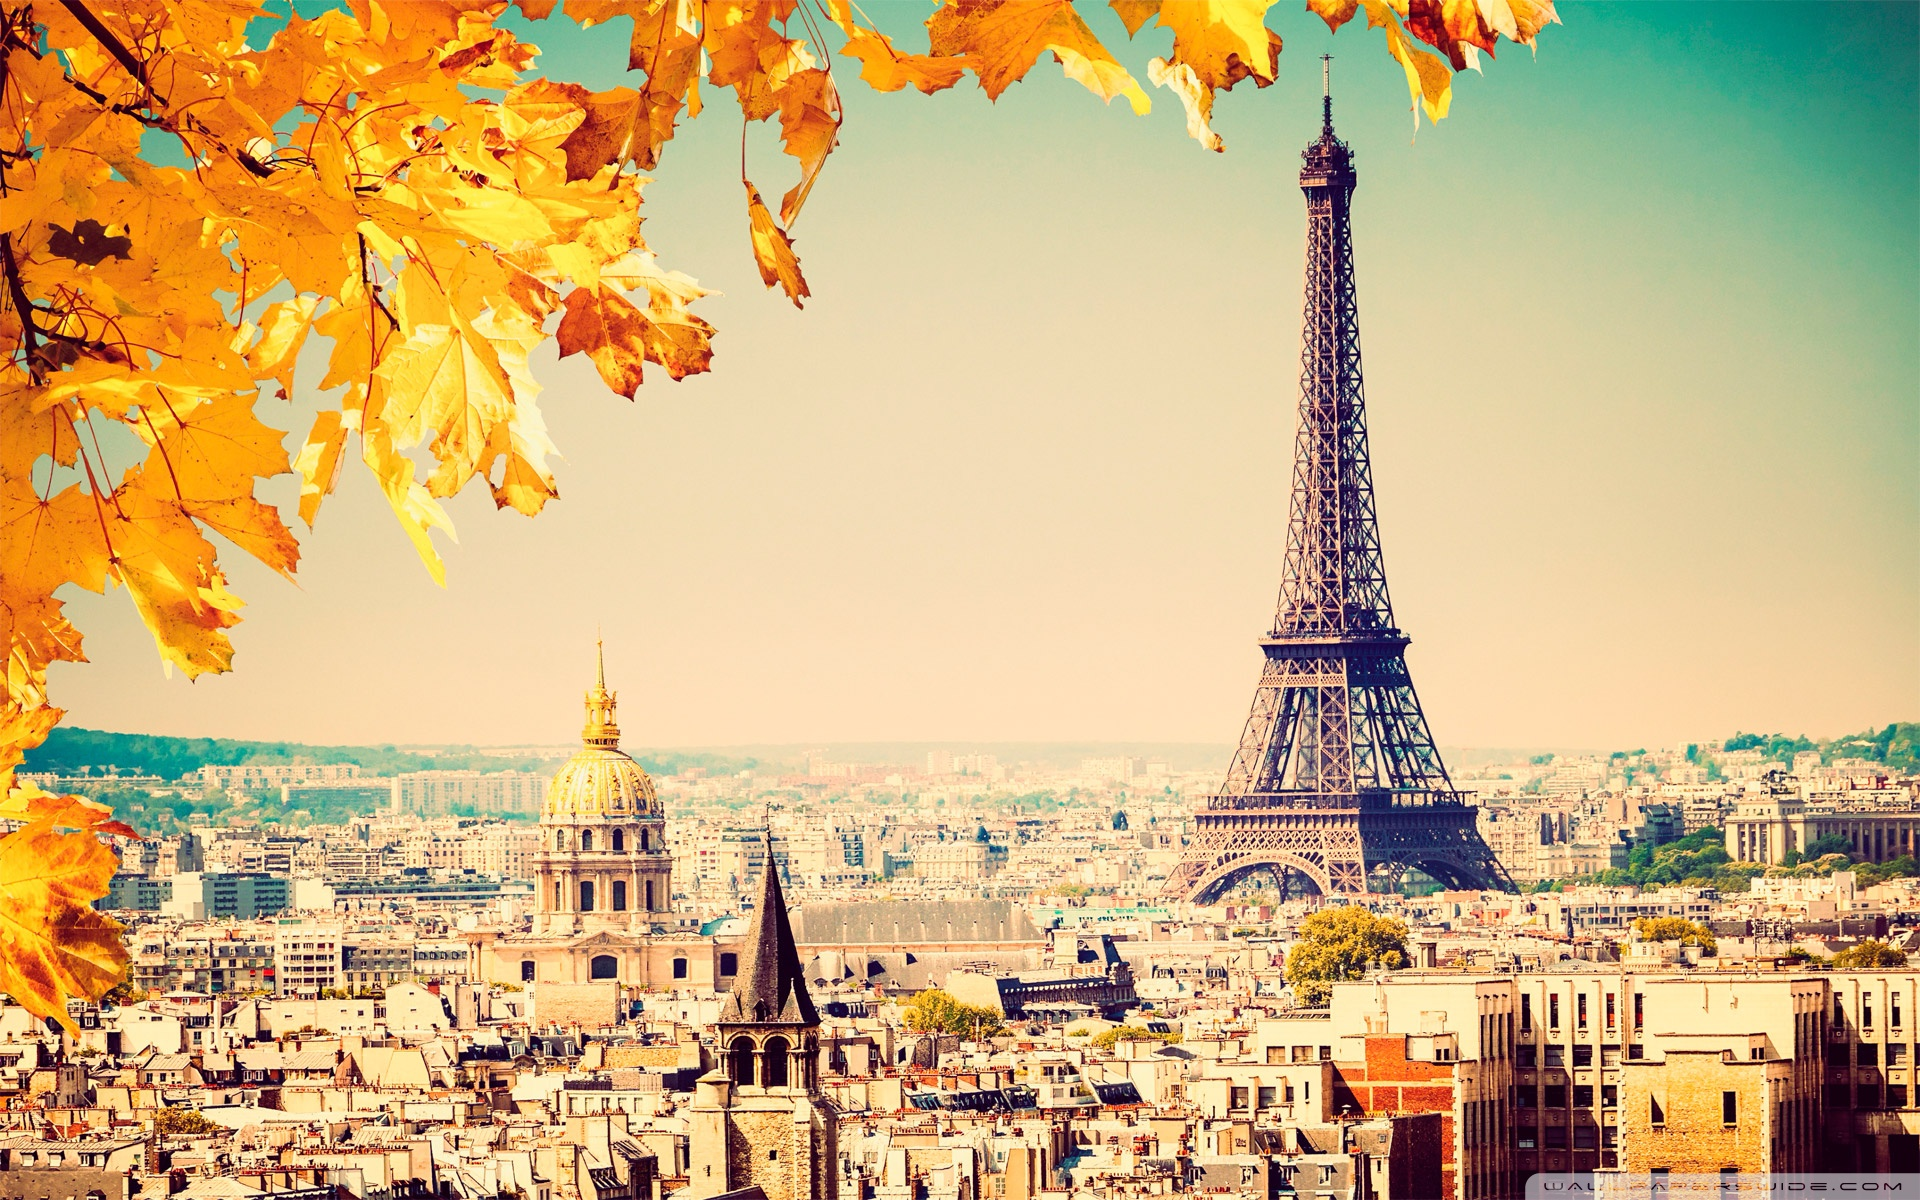 Paris Wallpapers and Background Images   stmednet 1920x1200